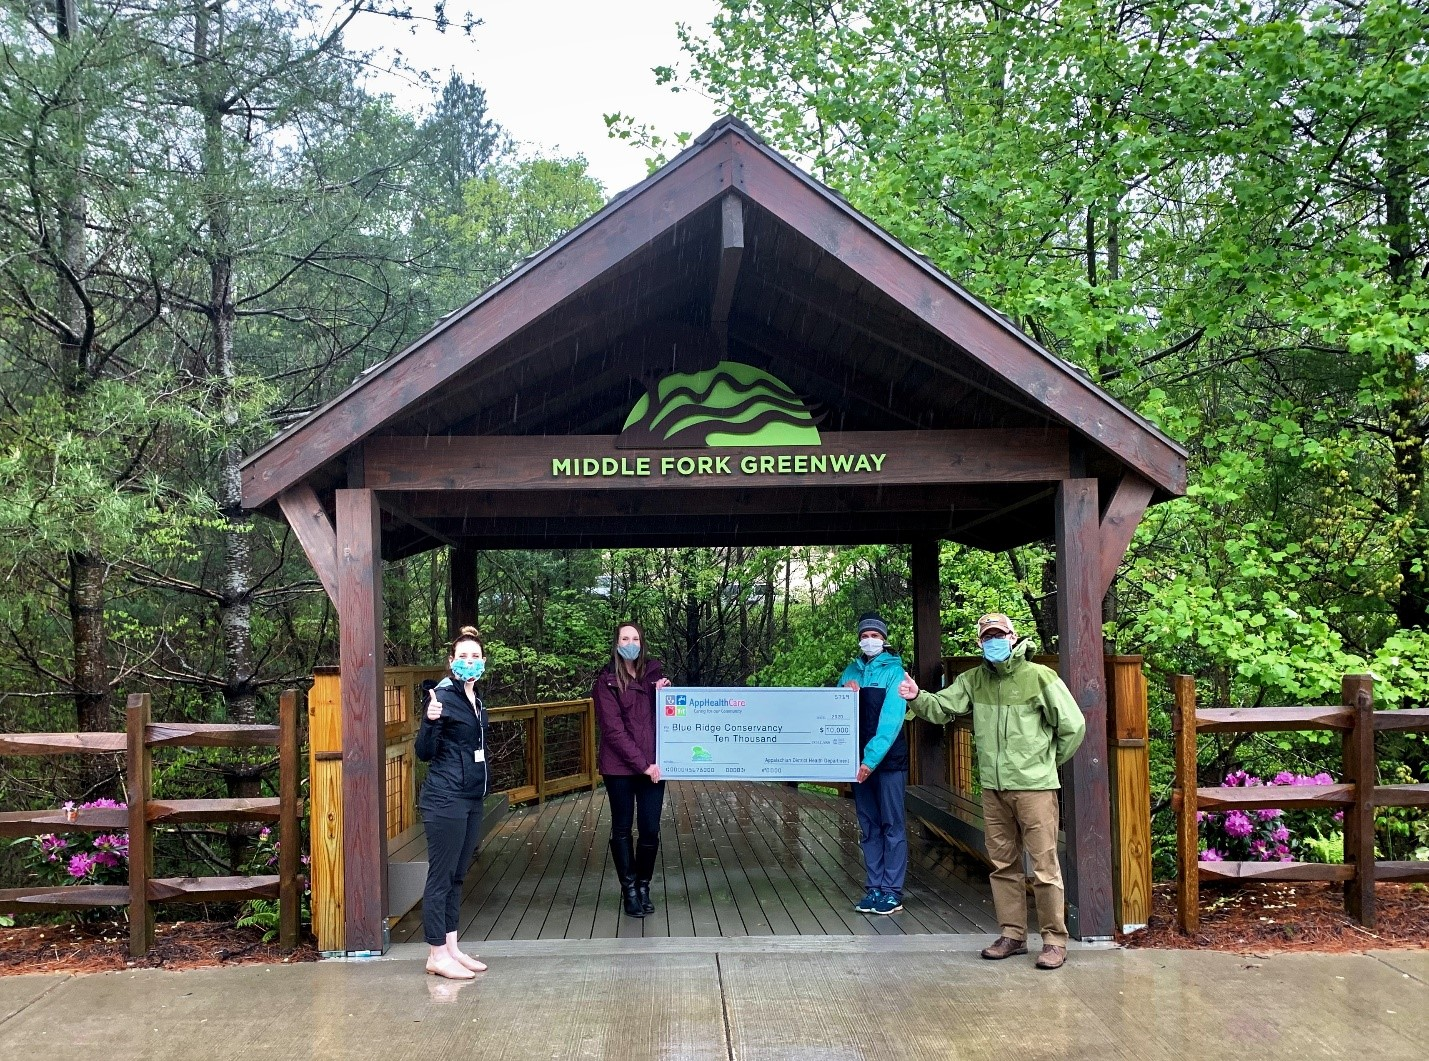 Blue Ridge Conservancy Awarded $10,000 for Middle Fork Greenway Project